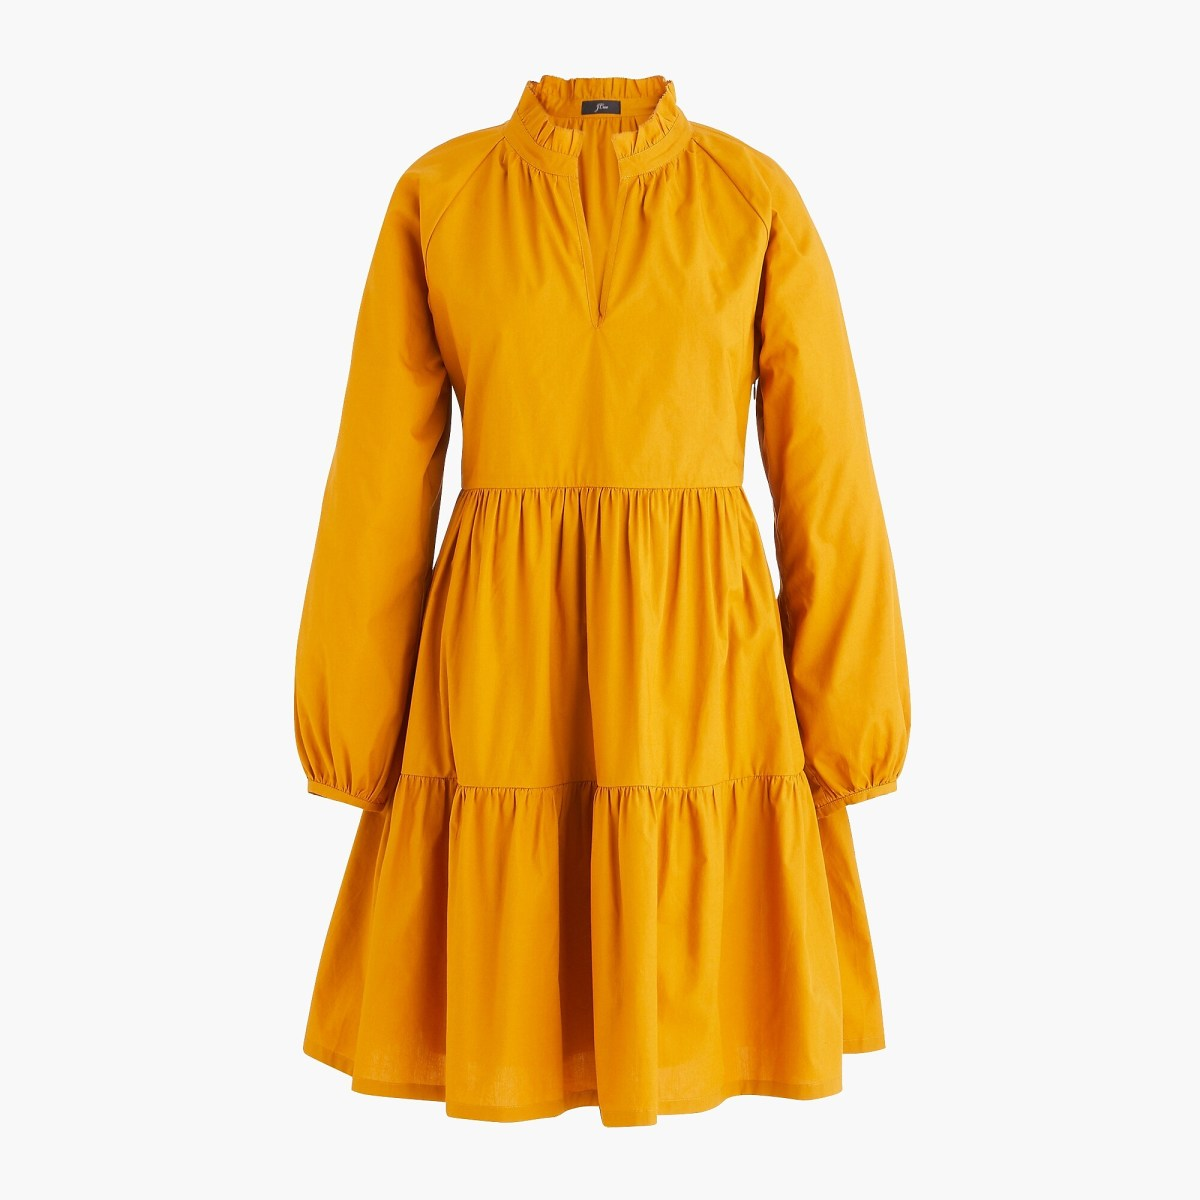 J.Crew Tiered Popover Dress in Warm Caramel, $110, available here.